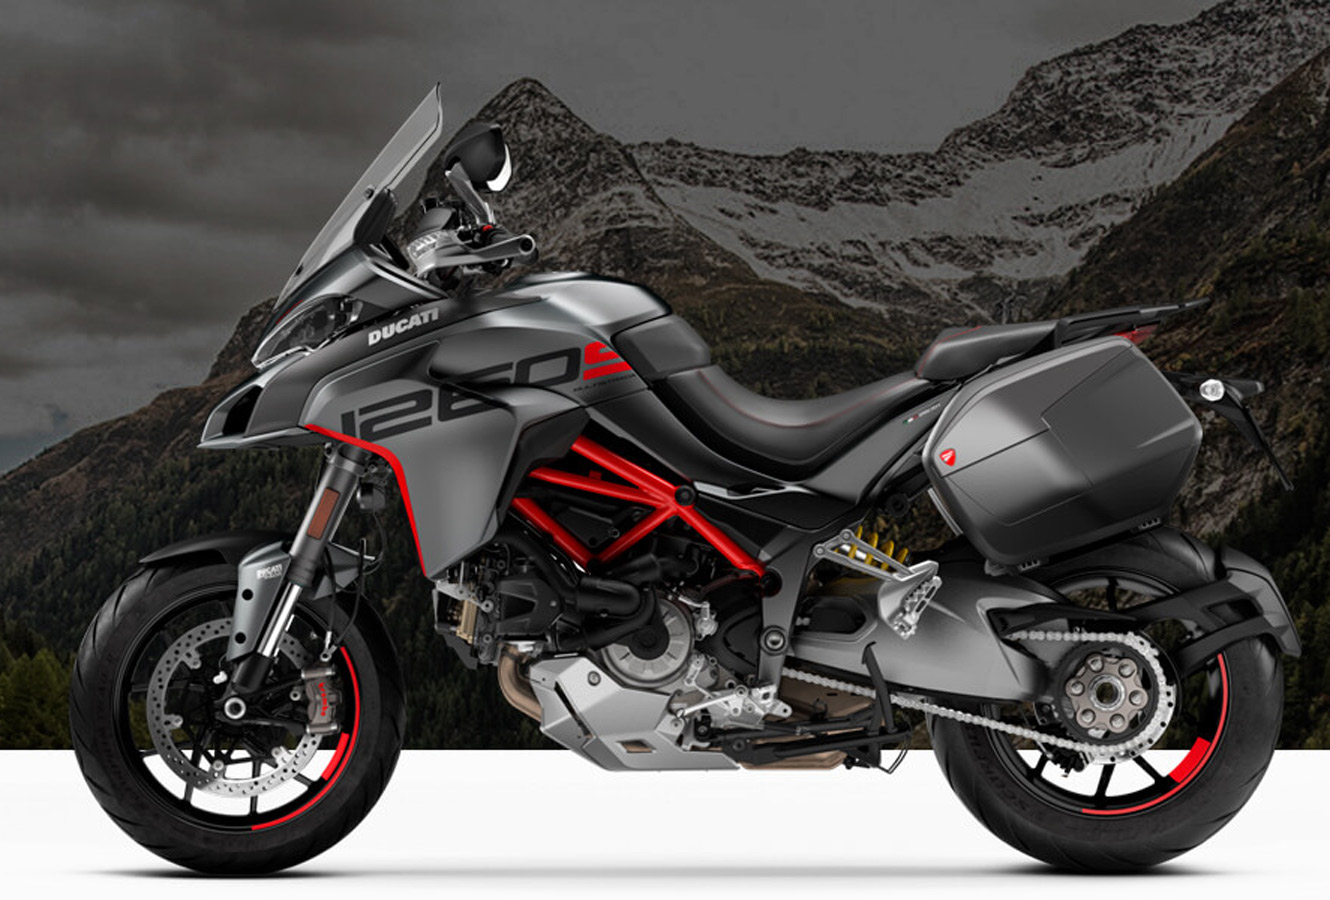 Ducati Multistrada Grand Tour